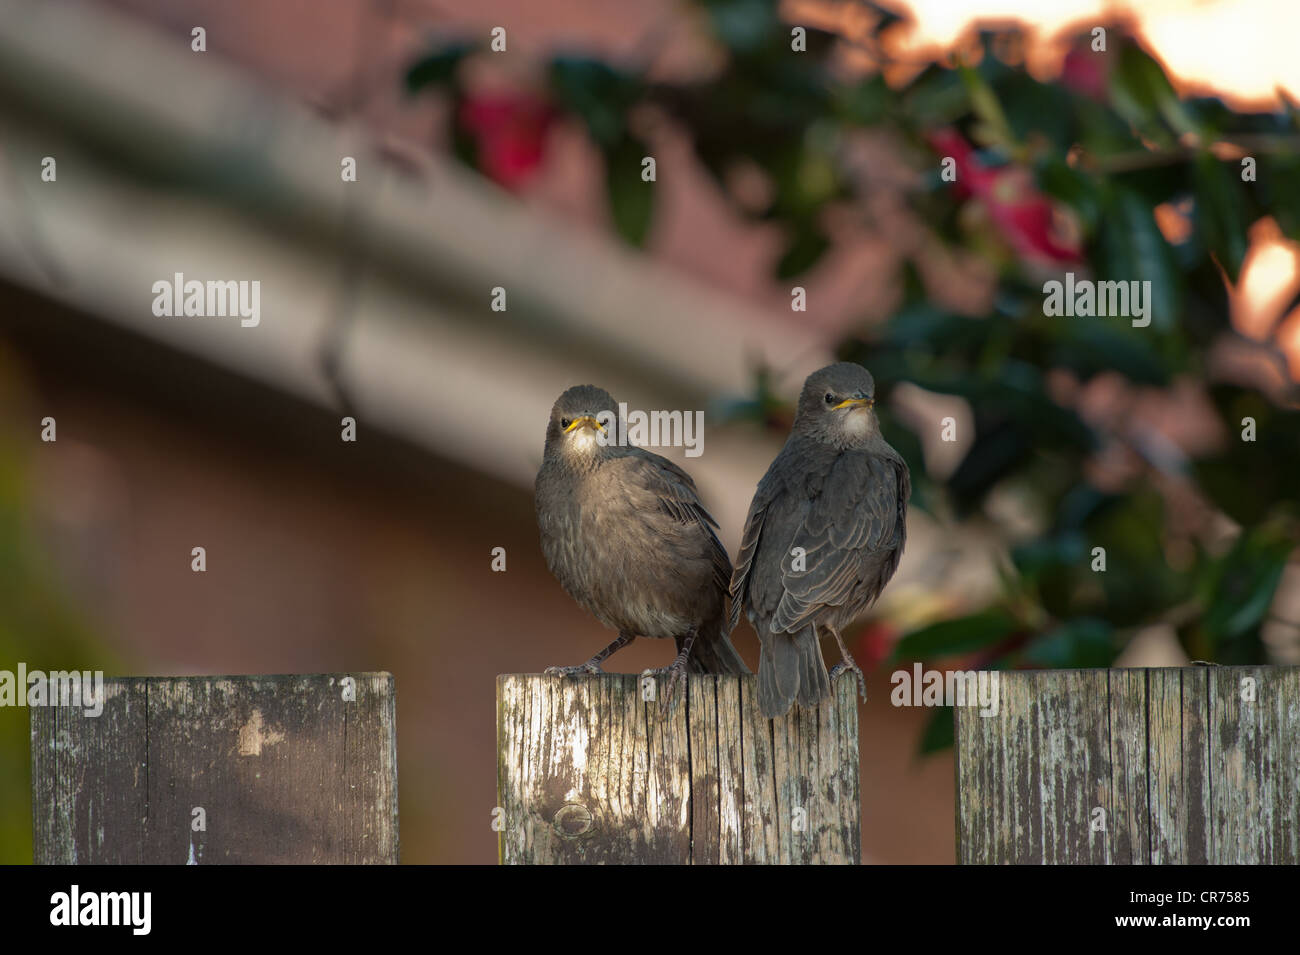 Two Starling Fledglings on fence - Stock Image